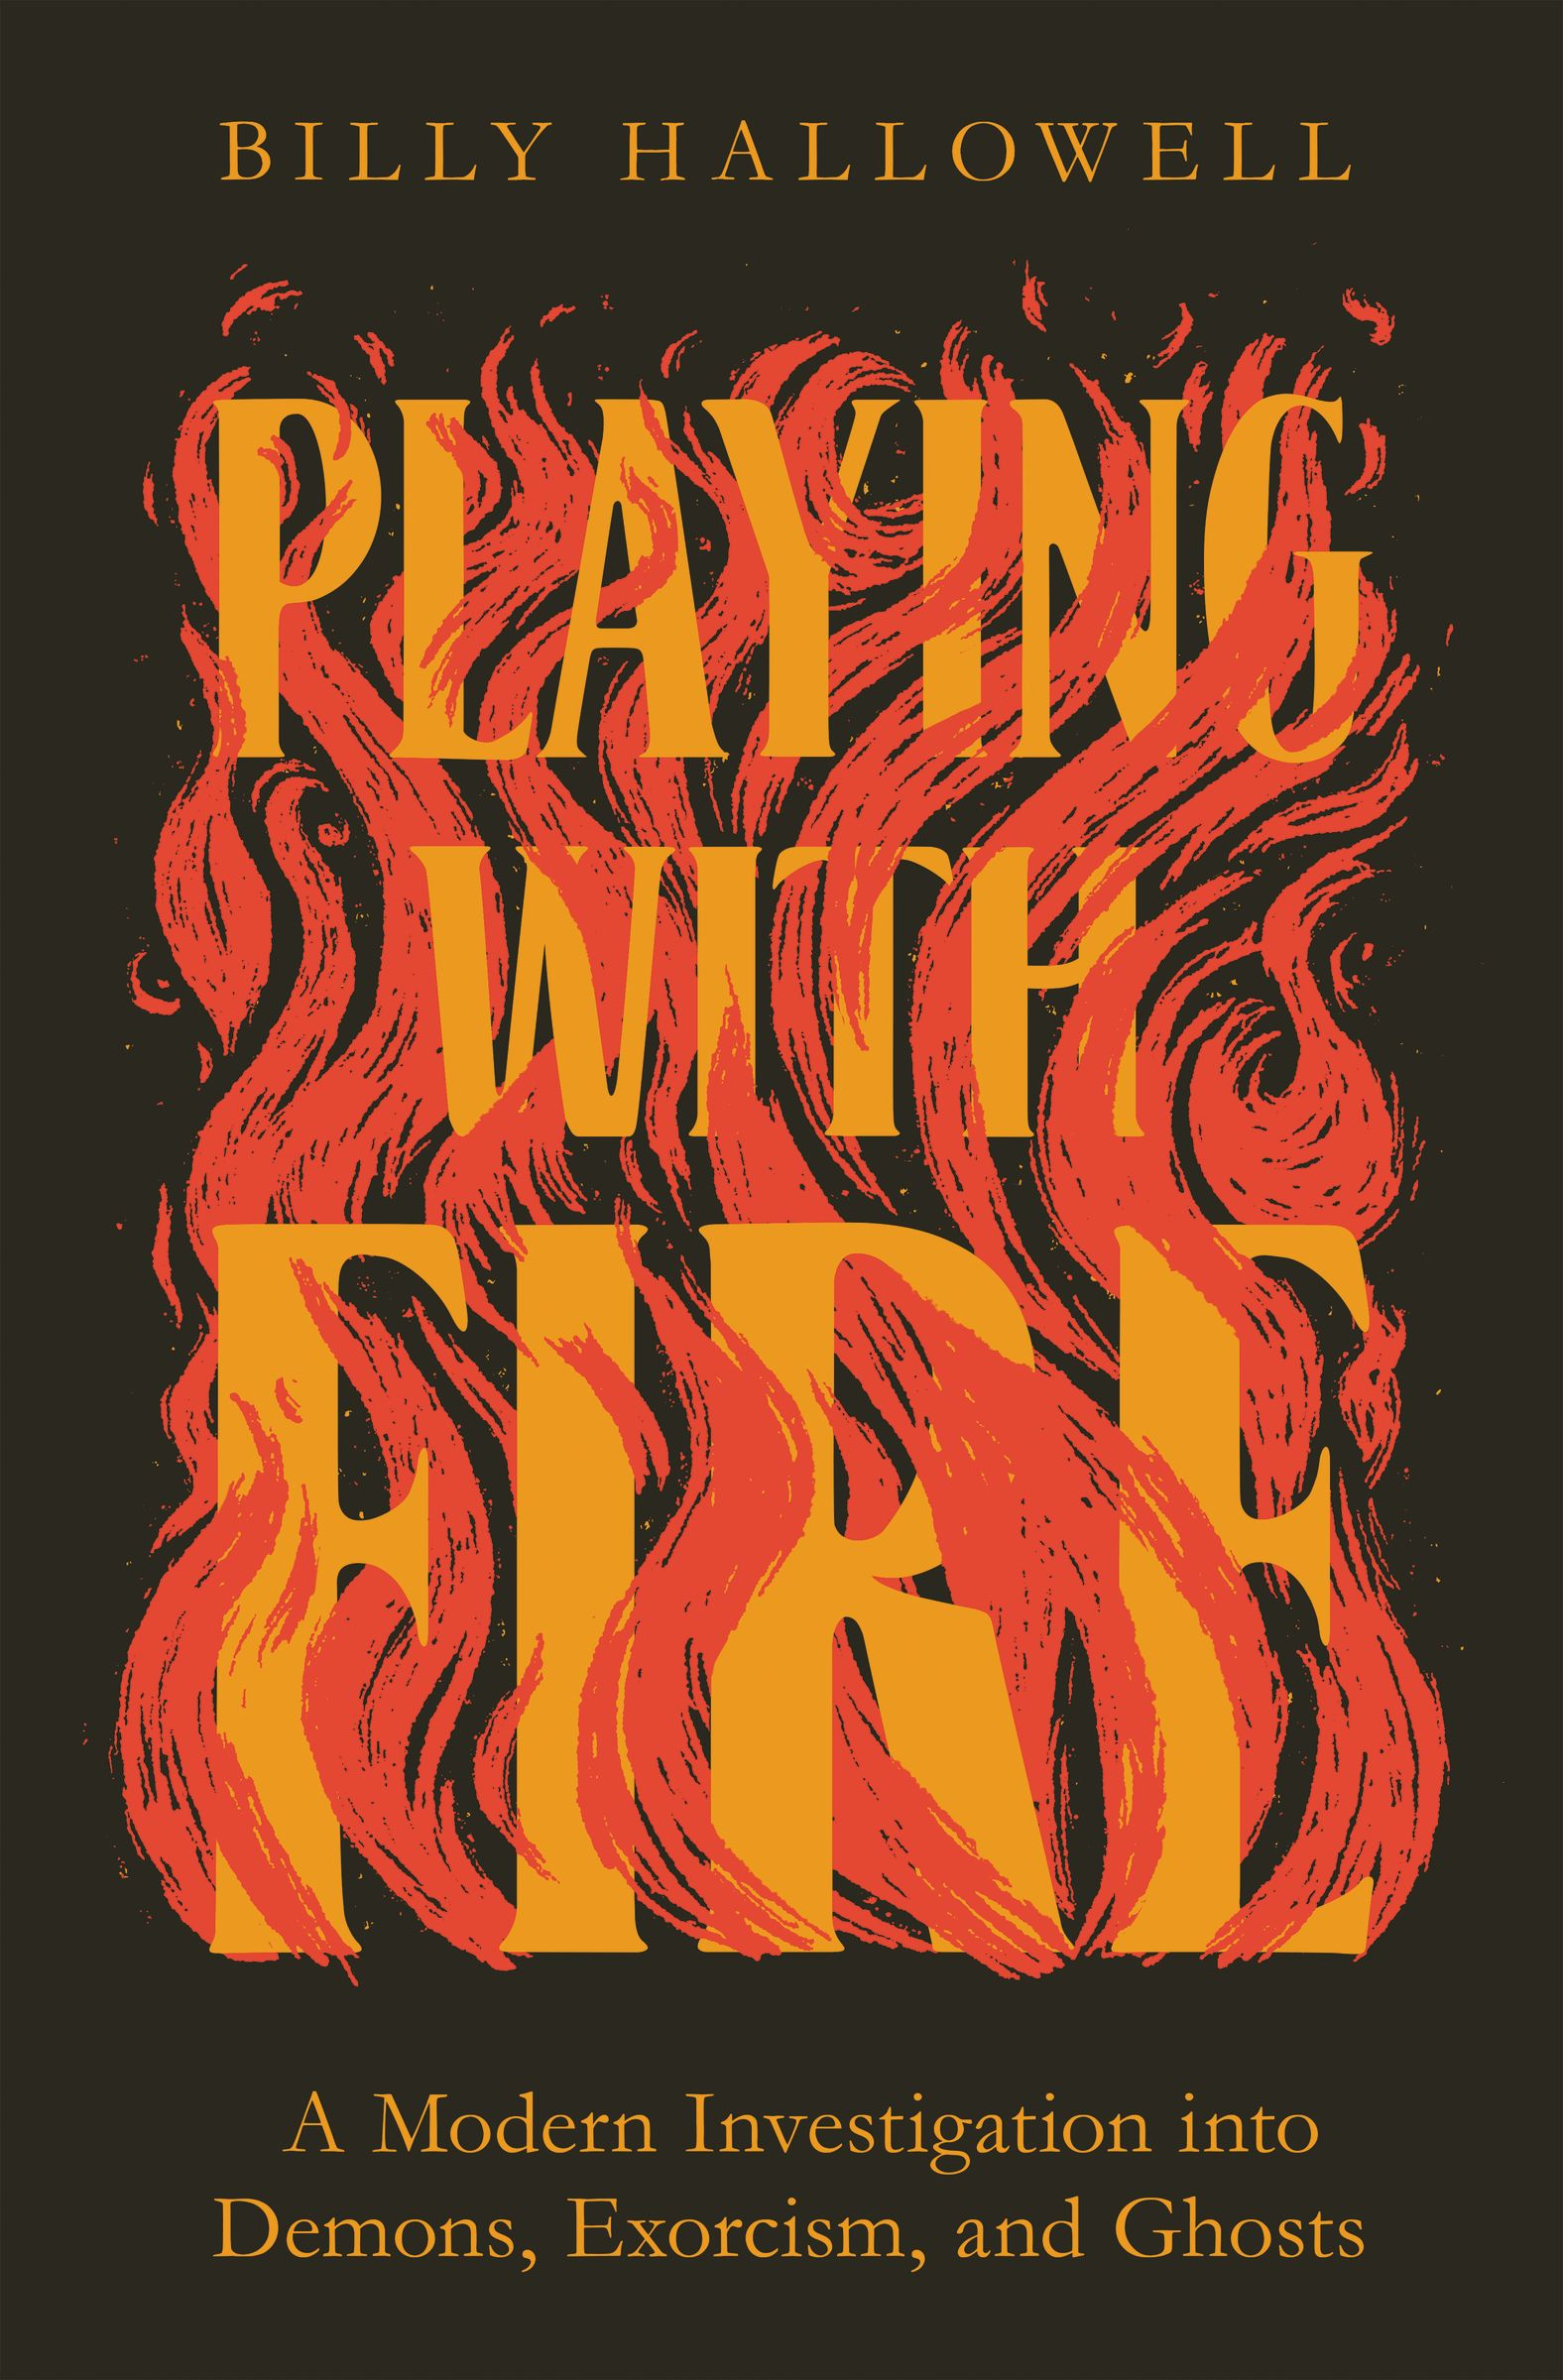 Playing with Fire: A Modern Investigation into Demons, Exorcism, and Ghosts